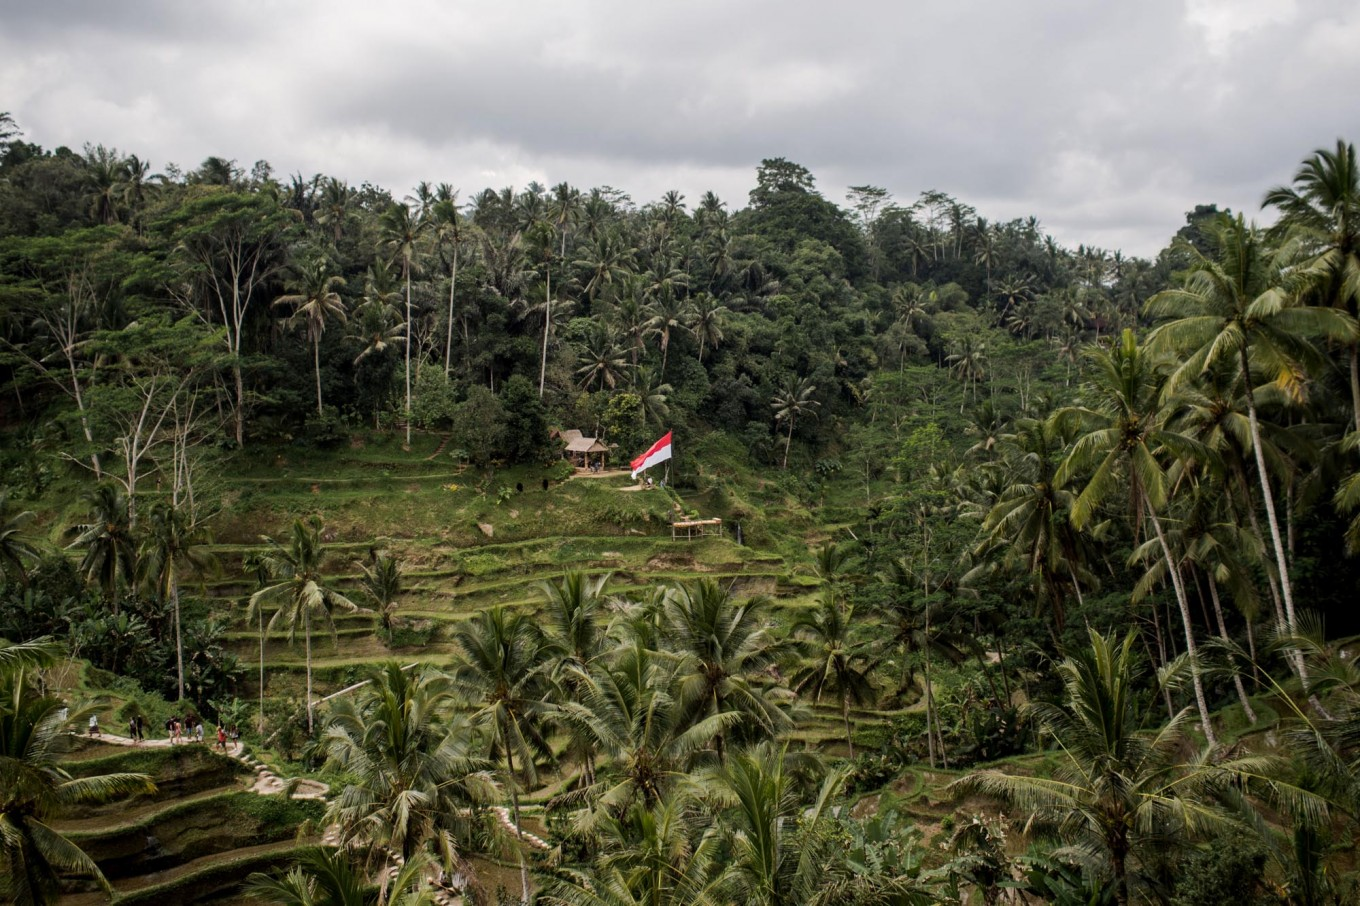 Green territory: A red and white flag is seen in the middle of a green paddy field in Ceking, Tegalalang, Gianyar, ahead of the country's Independence Day in August. Paddy field terraces are popular tourist destinations in Bali. JP/ Anggara Mahendra